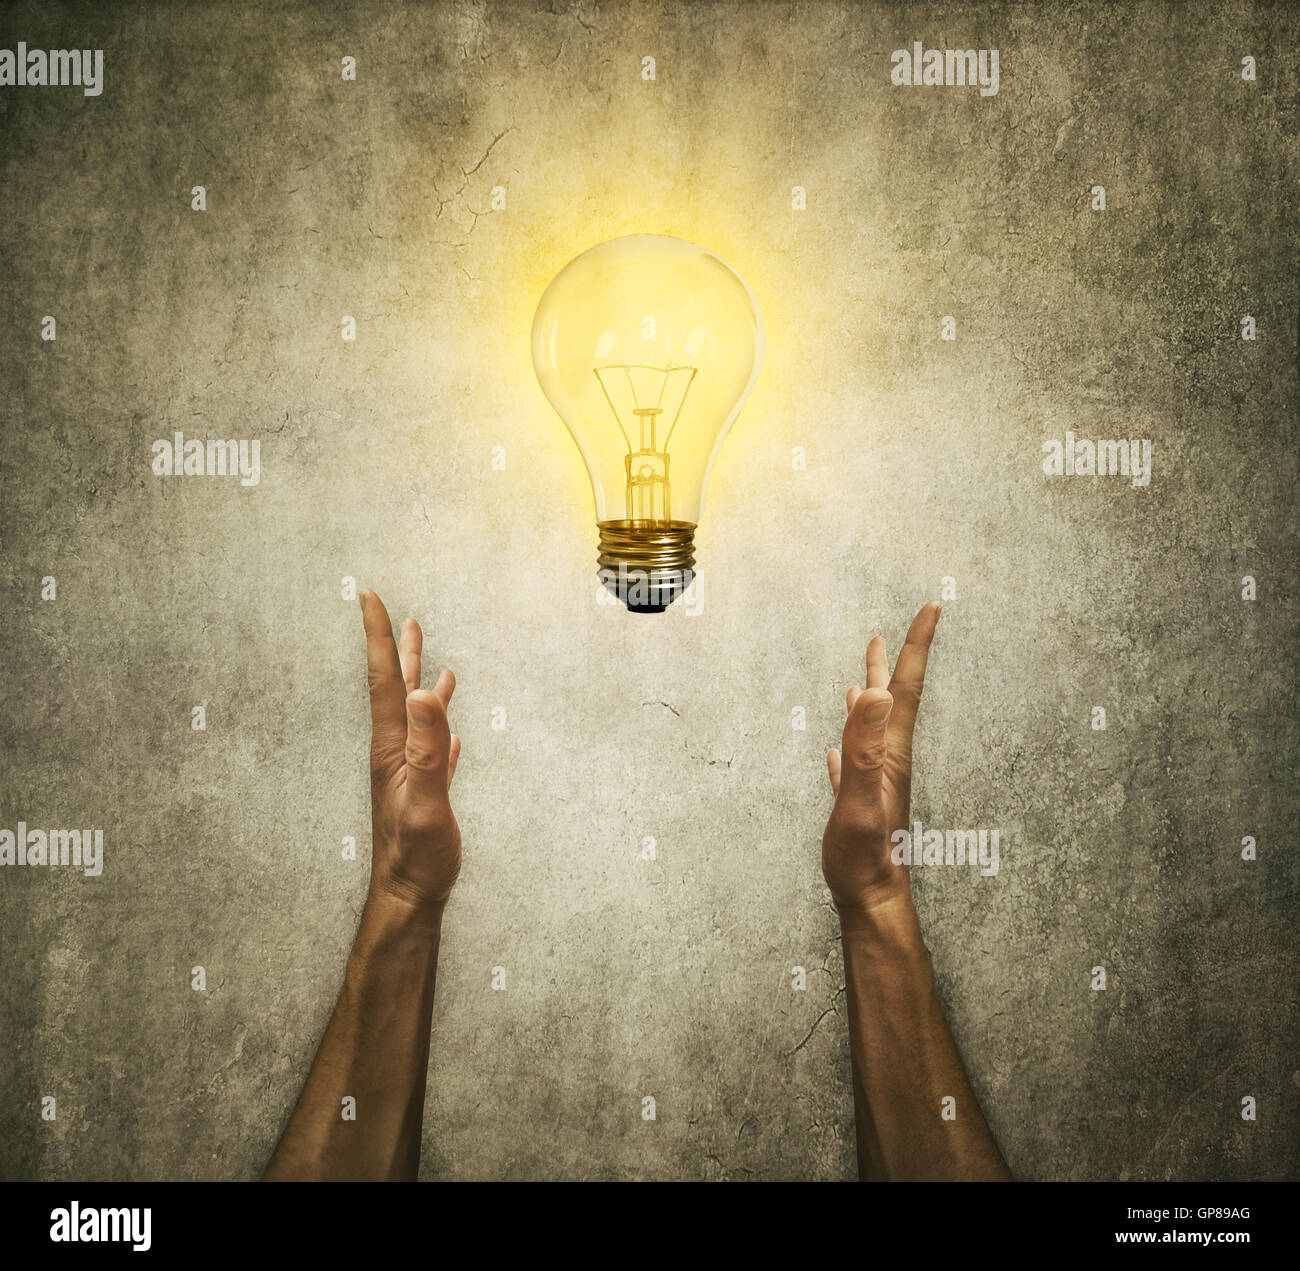 Closeup of two human hands holding a light bulb. Creativity and idea concept - Stock Image